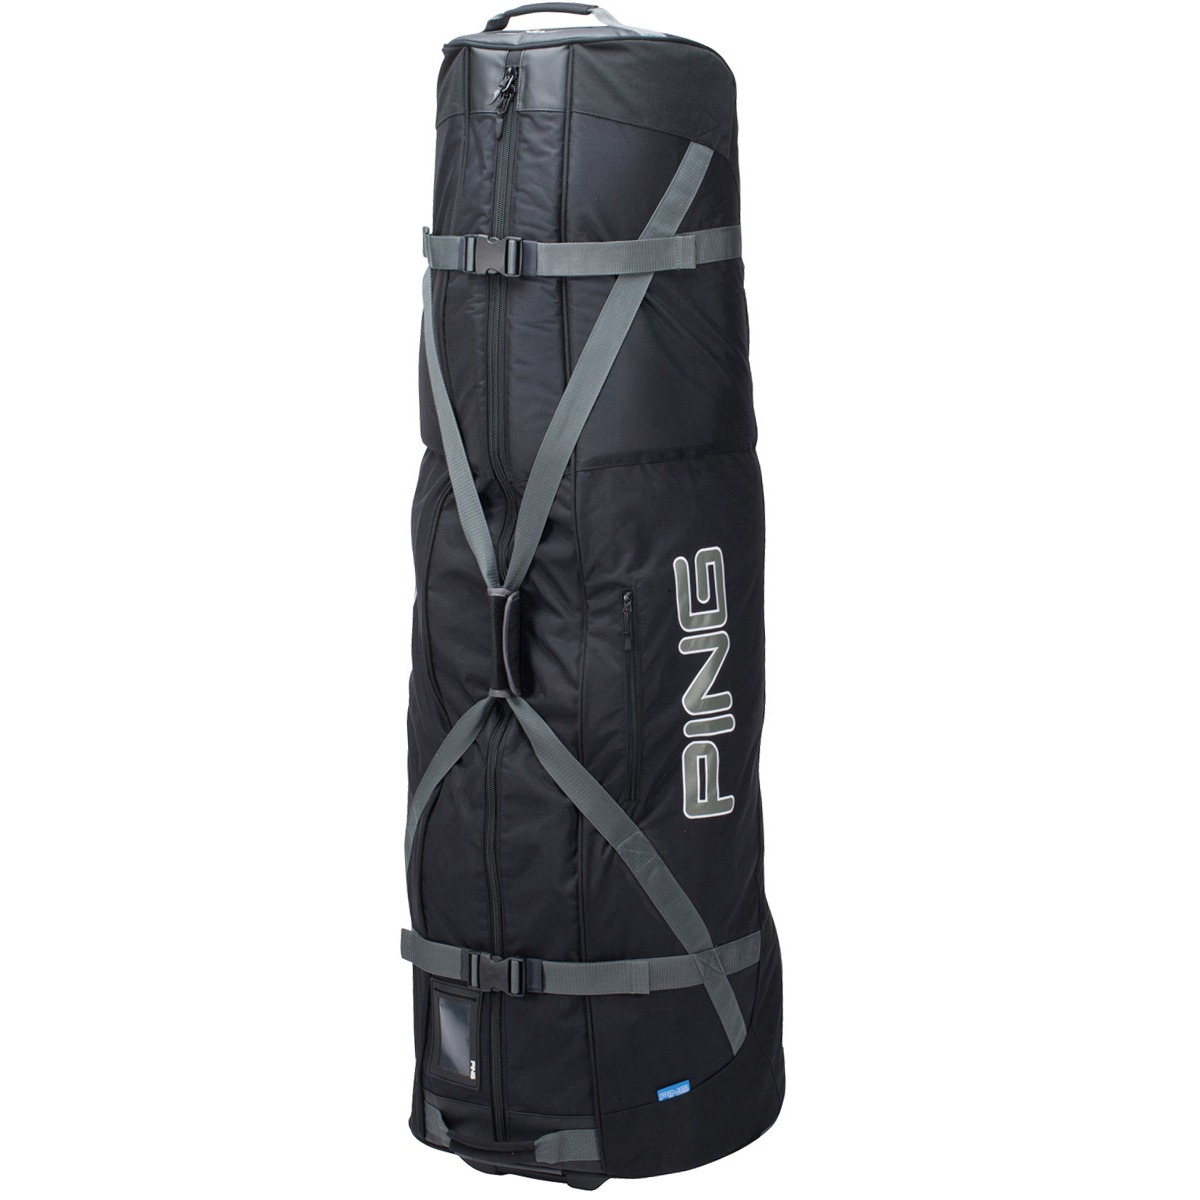 88f77fafc7b PING Large Travel Cover from american golf